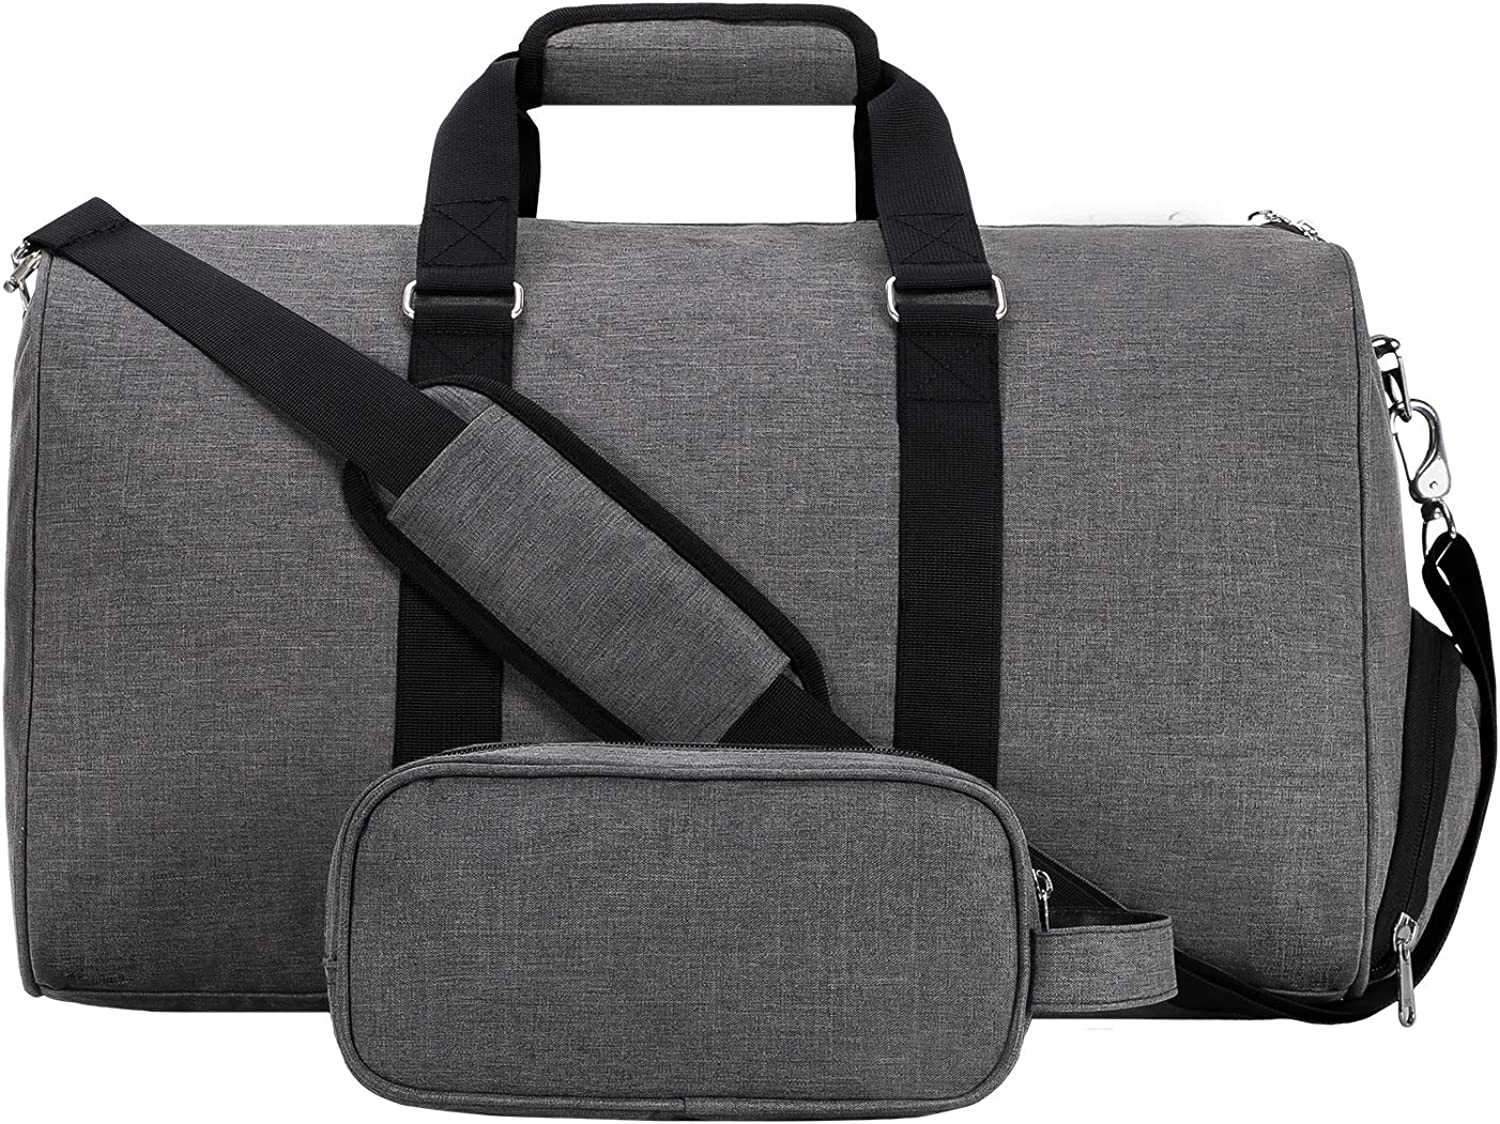 Amazon.com | MIER Gym Duffel Bag for Men and Women with Shoe Compartment, Carry On Size, 20inches, Sets of 2(Large and Small), Light Grey | Sports Duffels